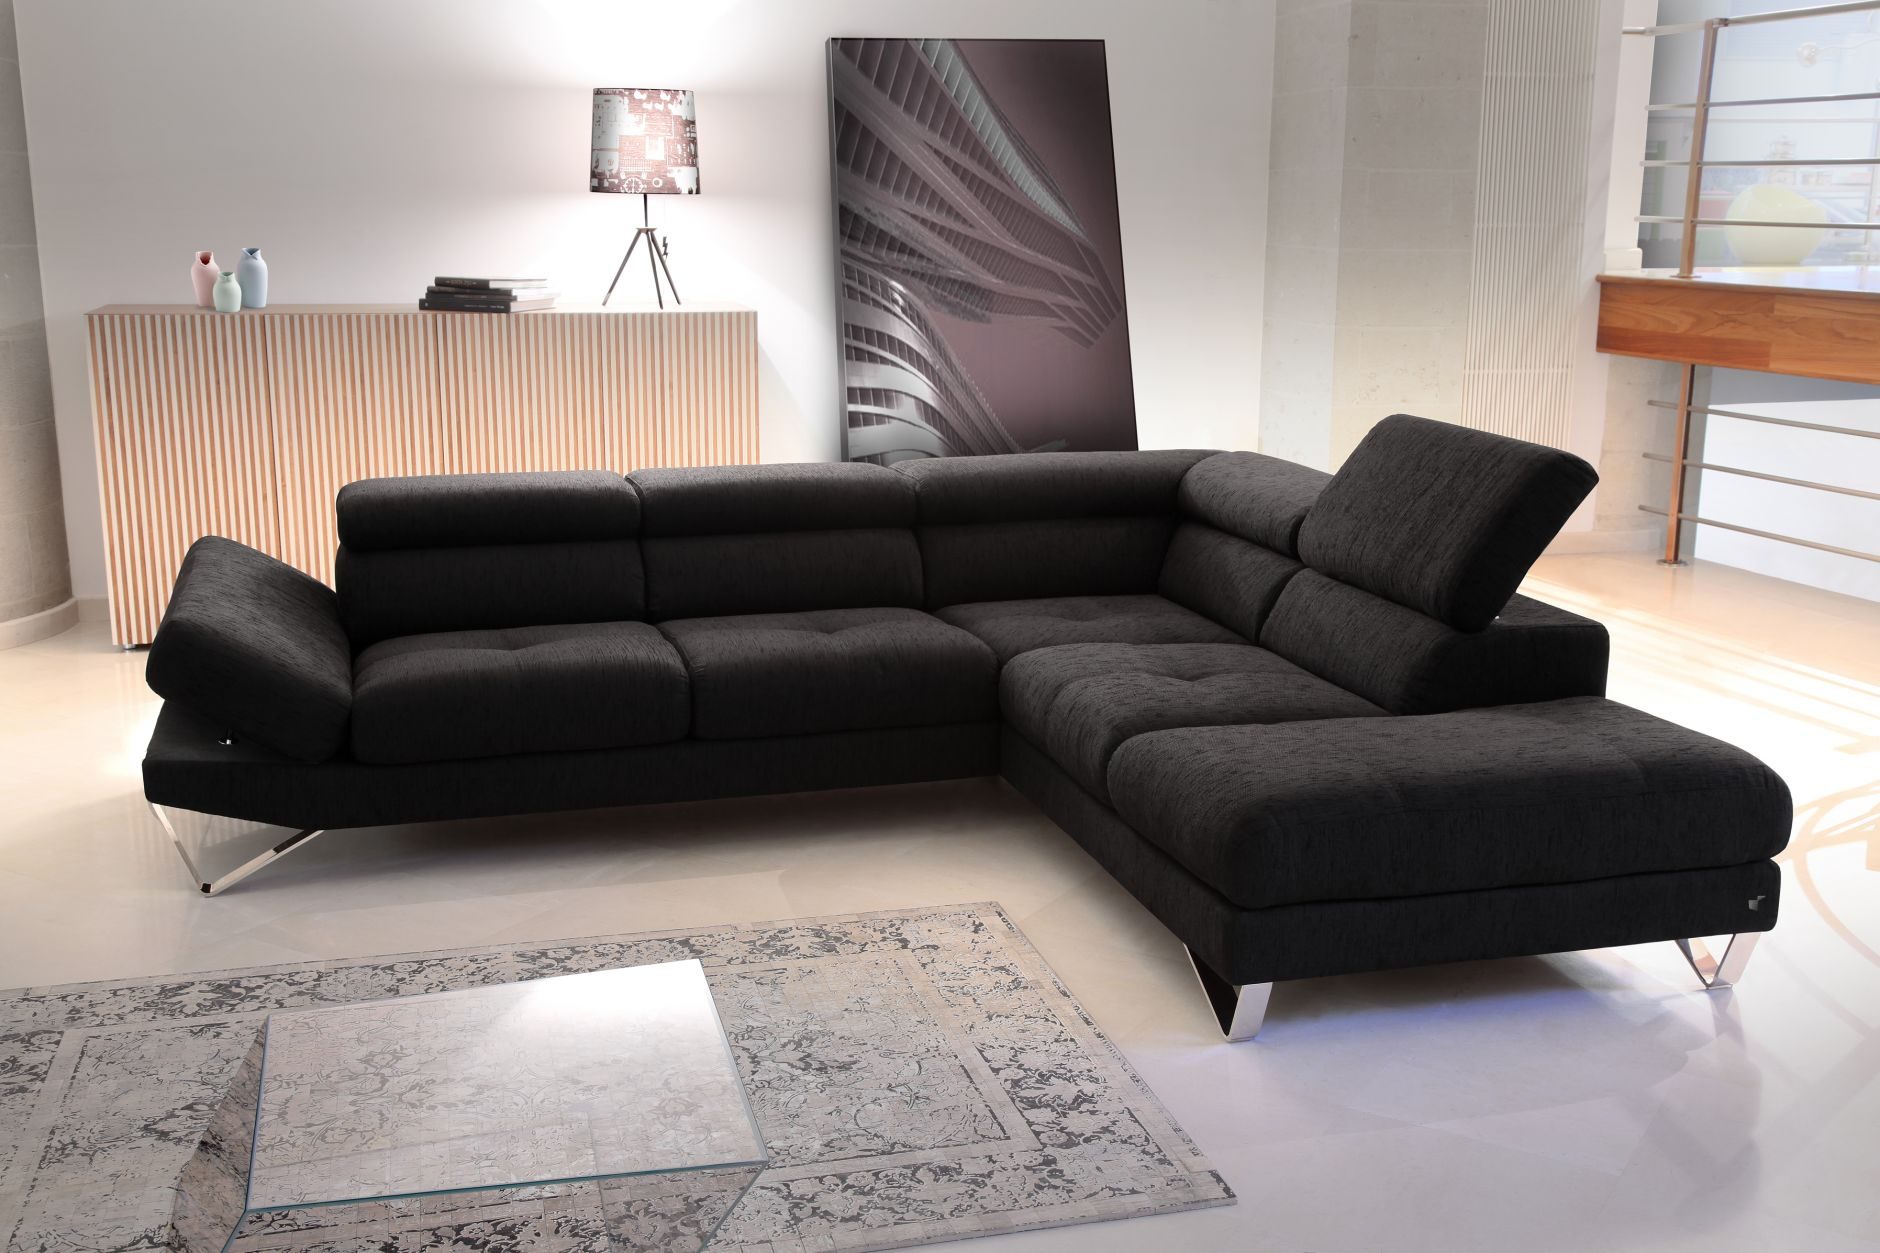 cameo sofa cameo sofas and chairs range finline furniture thesofa. Black Bedroom Furniture Sets. Home Design Ideas